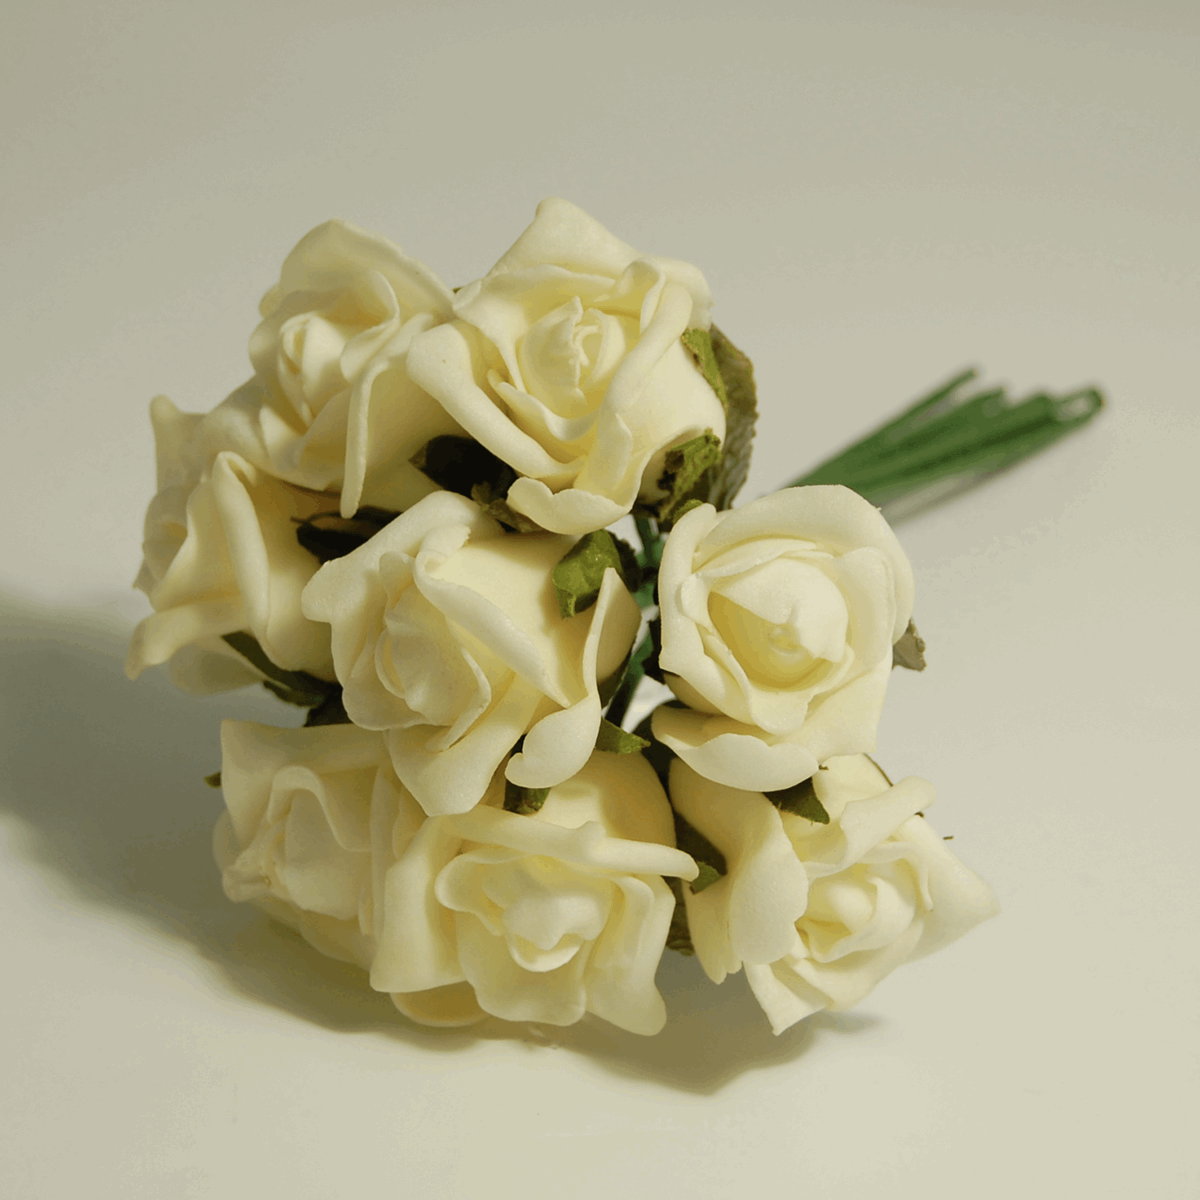 Picture of Flowers: Rose Buds: Polyfoam: Small: Pack of 8: Ivory